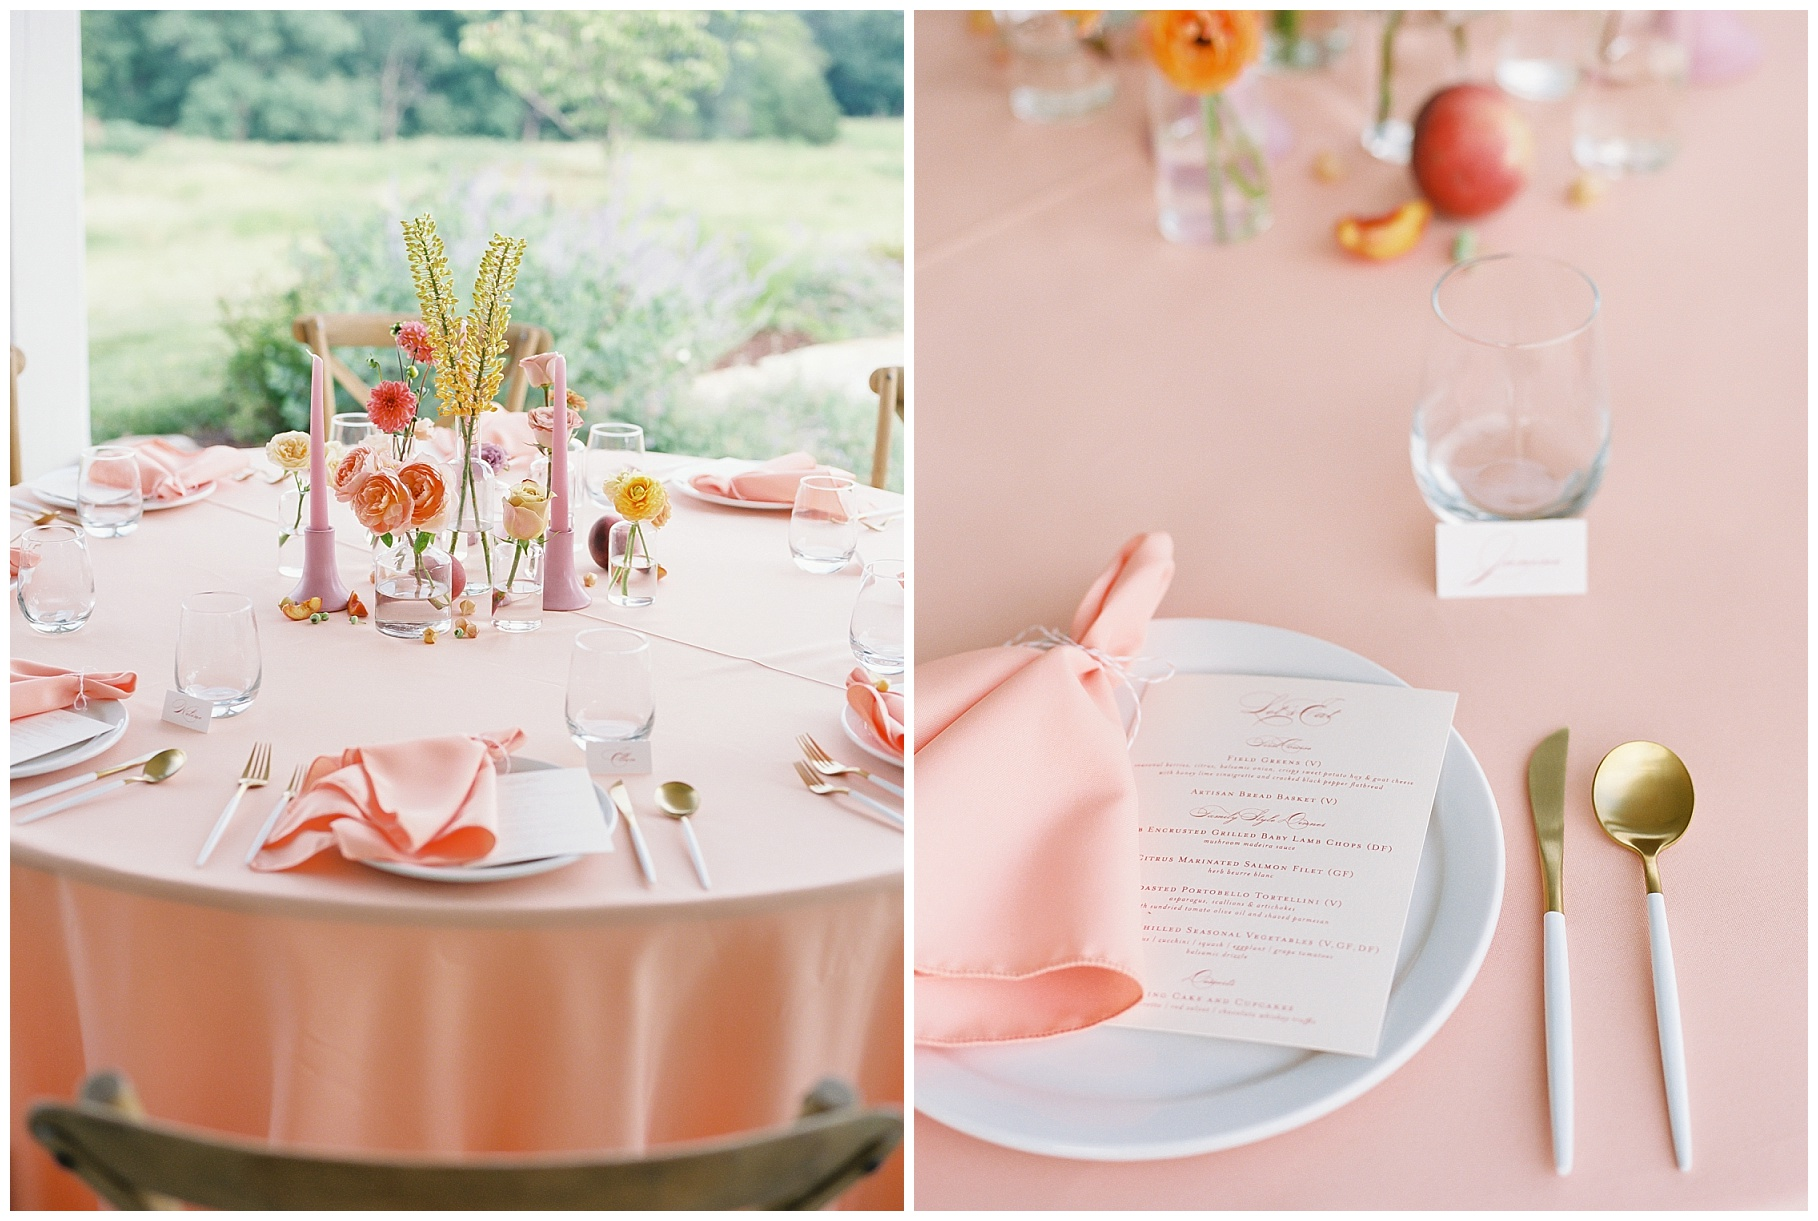 Late Summer Wedding With Pastel Toned Soiree at Blue Bell Farm by Kelsi Kliethermes Photography Best Columbia Missouri Wedding Photographer_0071.jpg